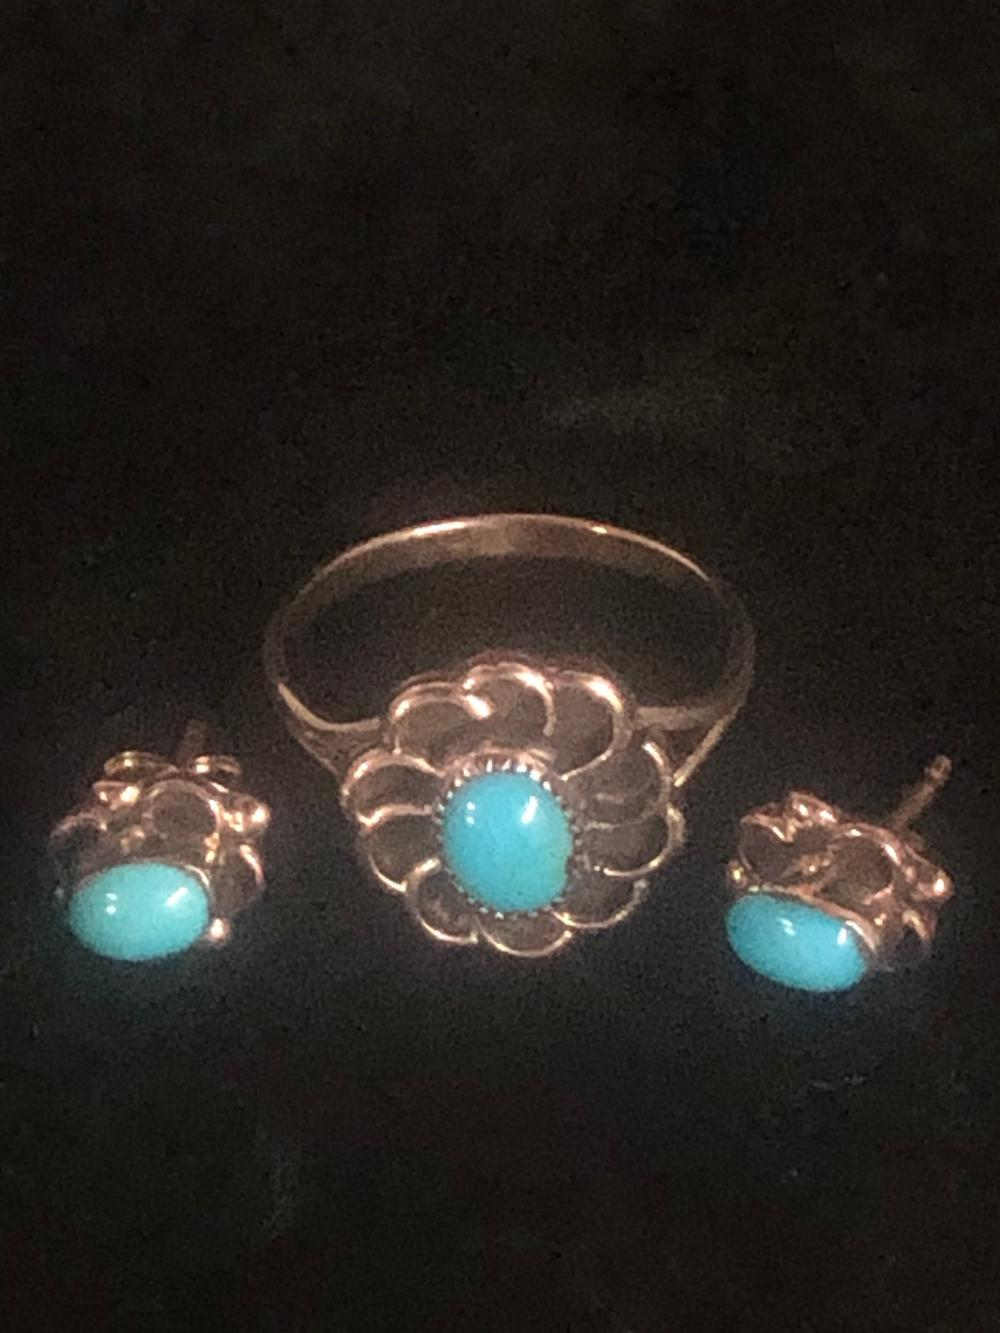 Turquoise ring and earring 'set'